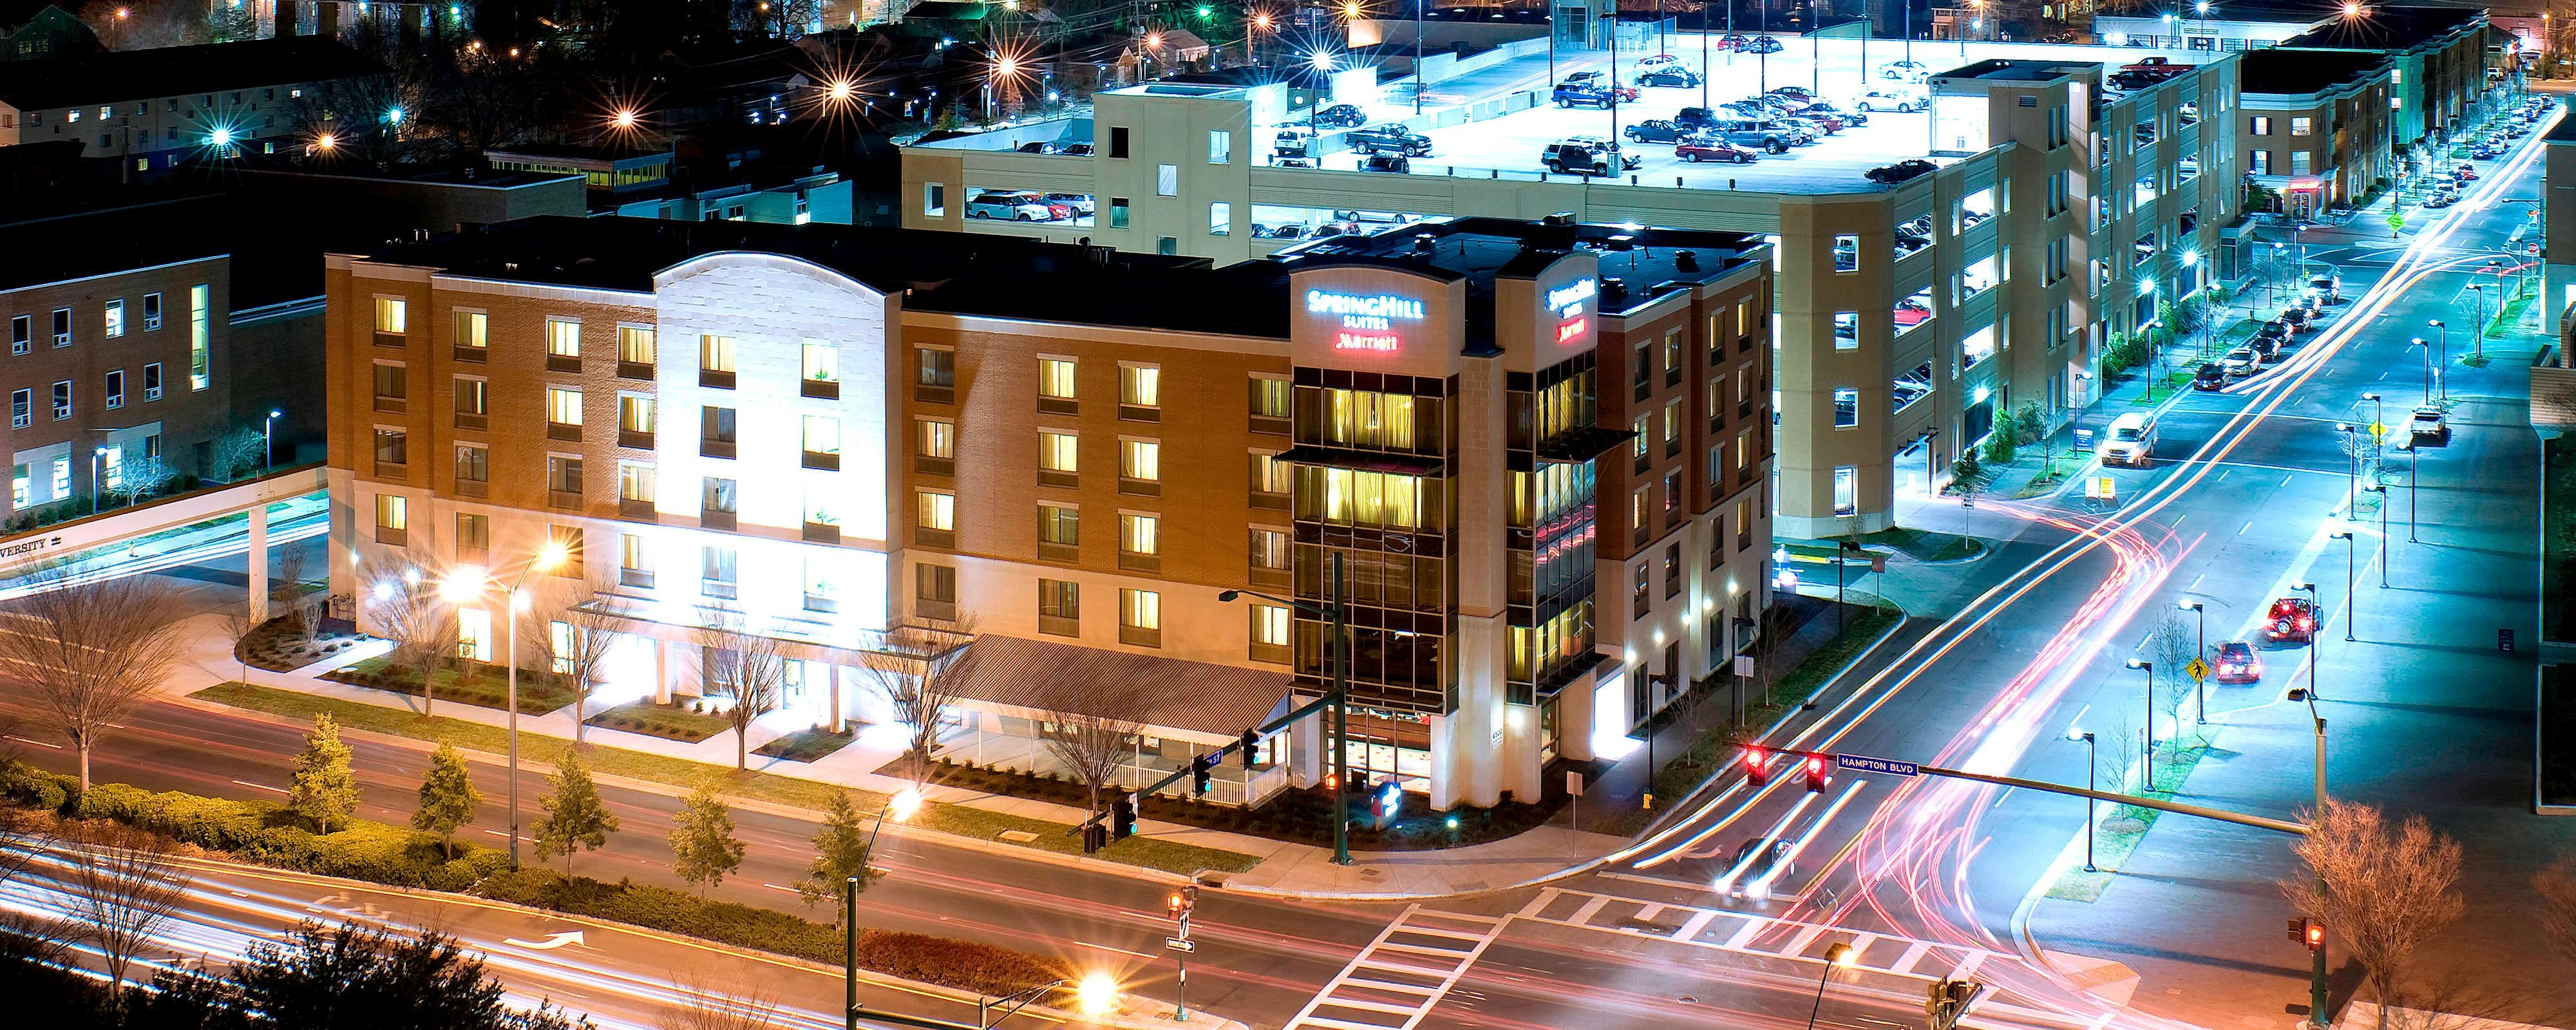 The SpringHill Suites ODU